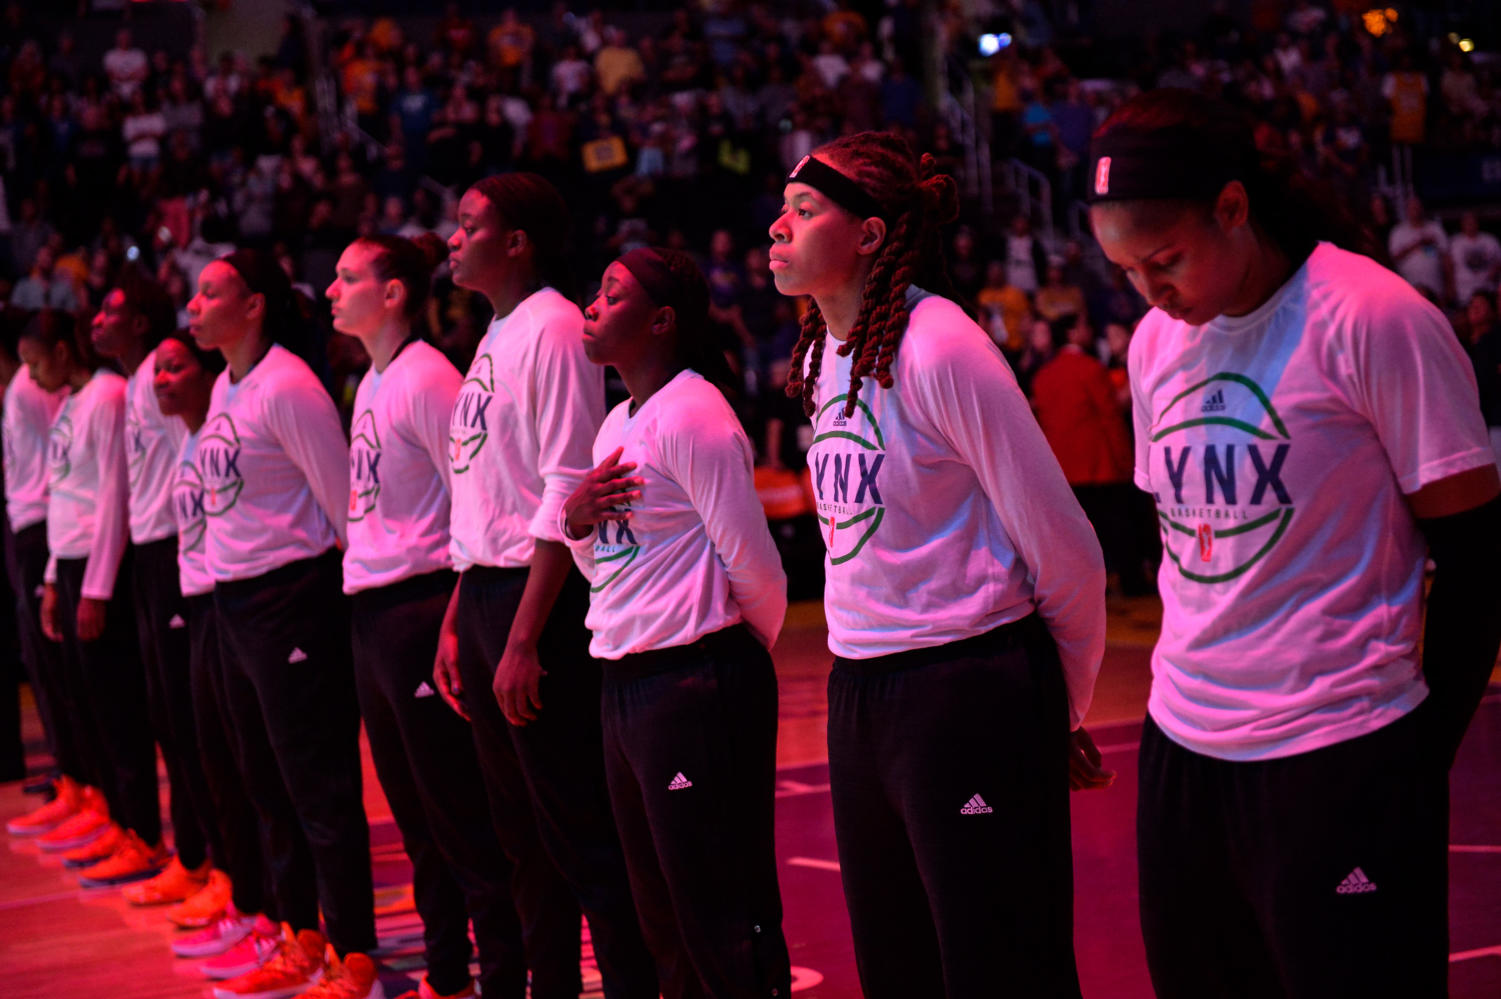 The Minnesota Lynx stand for the national anthem without their arms crossed for the first time before game four of the WNBA Finals on Sunday, Oct. 1, 2017 at Staples Center in Los Angeles, Calif. (Aaron Lavinsky/Minneapolis Star Tribune/TNS)